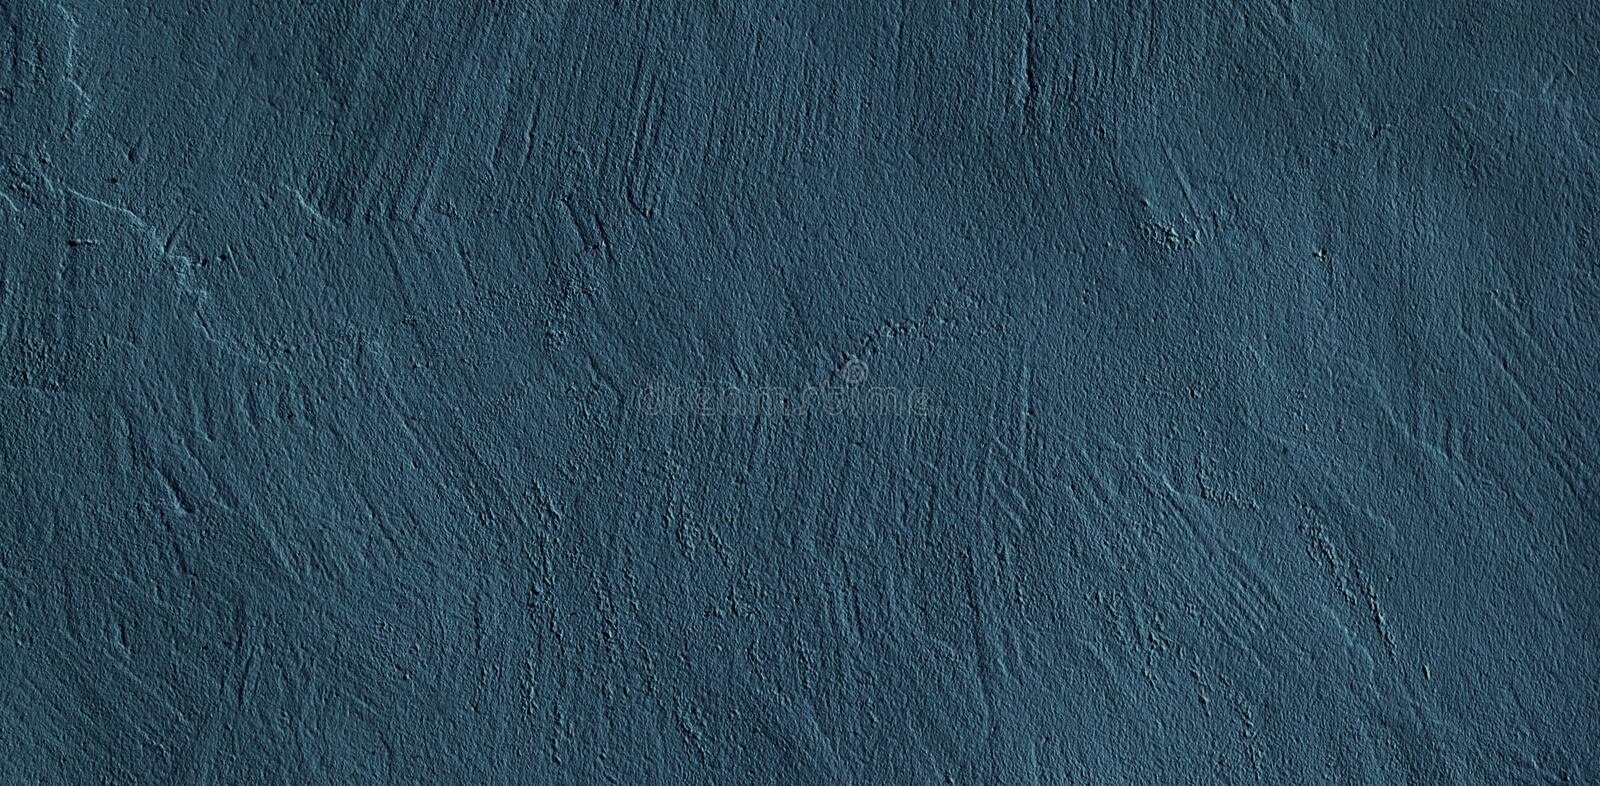 Abstract Grunge Navy Blue Dark Stucco Background royalty free stock image